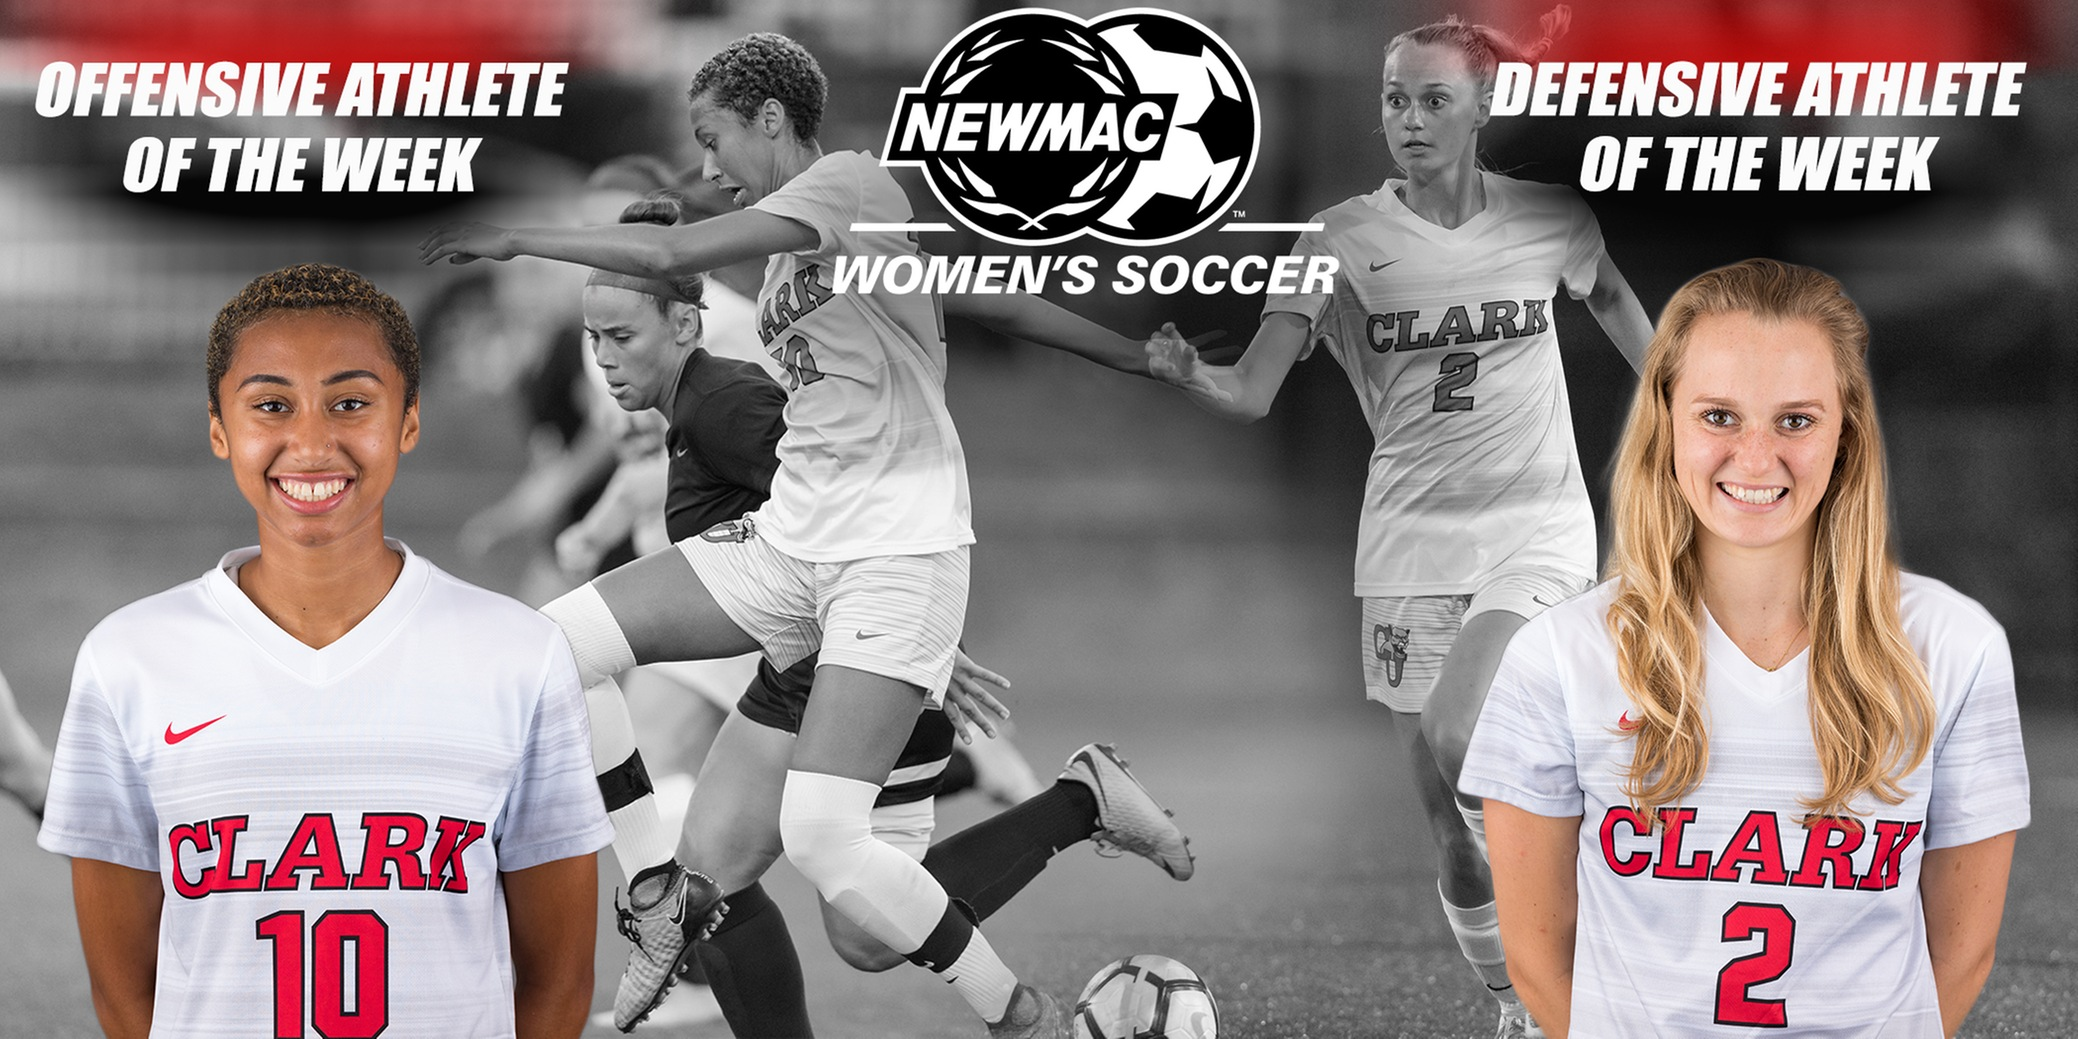 Kaloustian and Simons Sweep NEWMAC Women's Soccer Weekly Awards